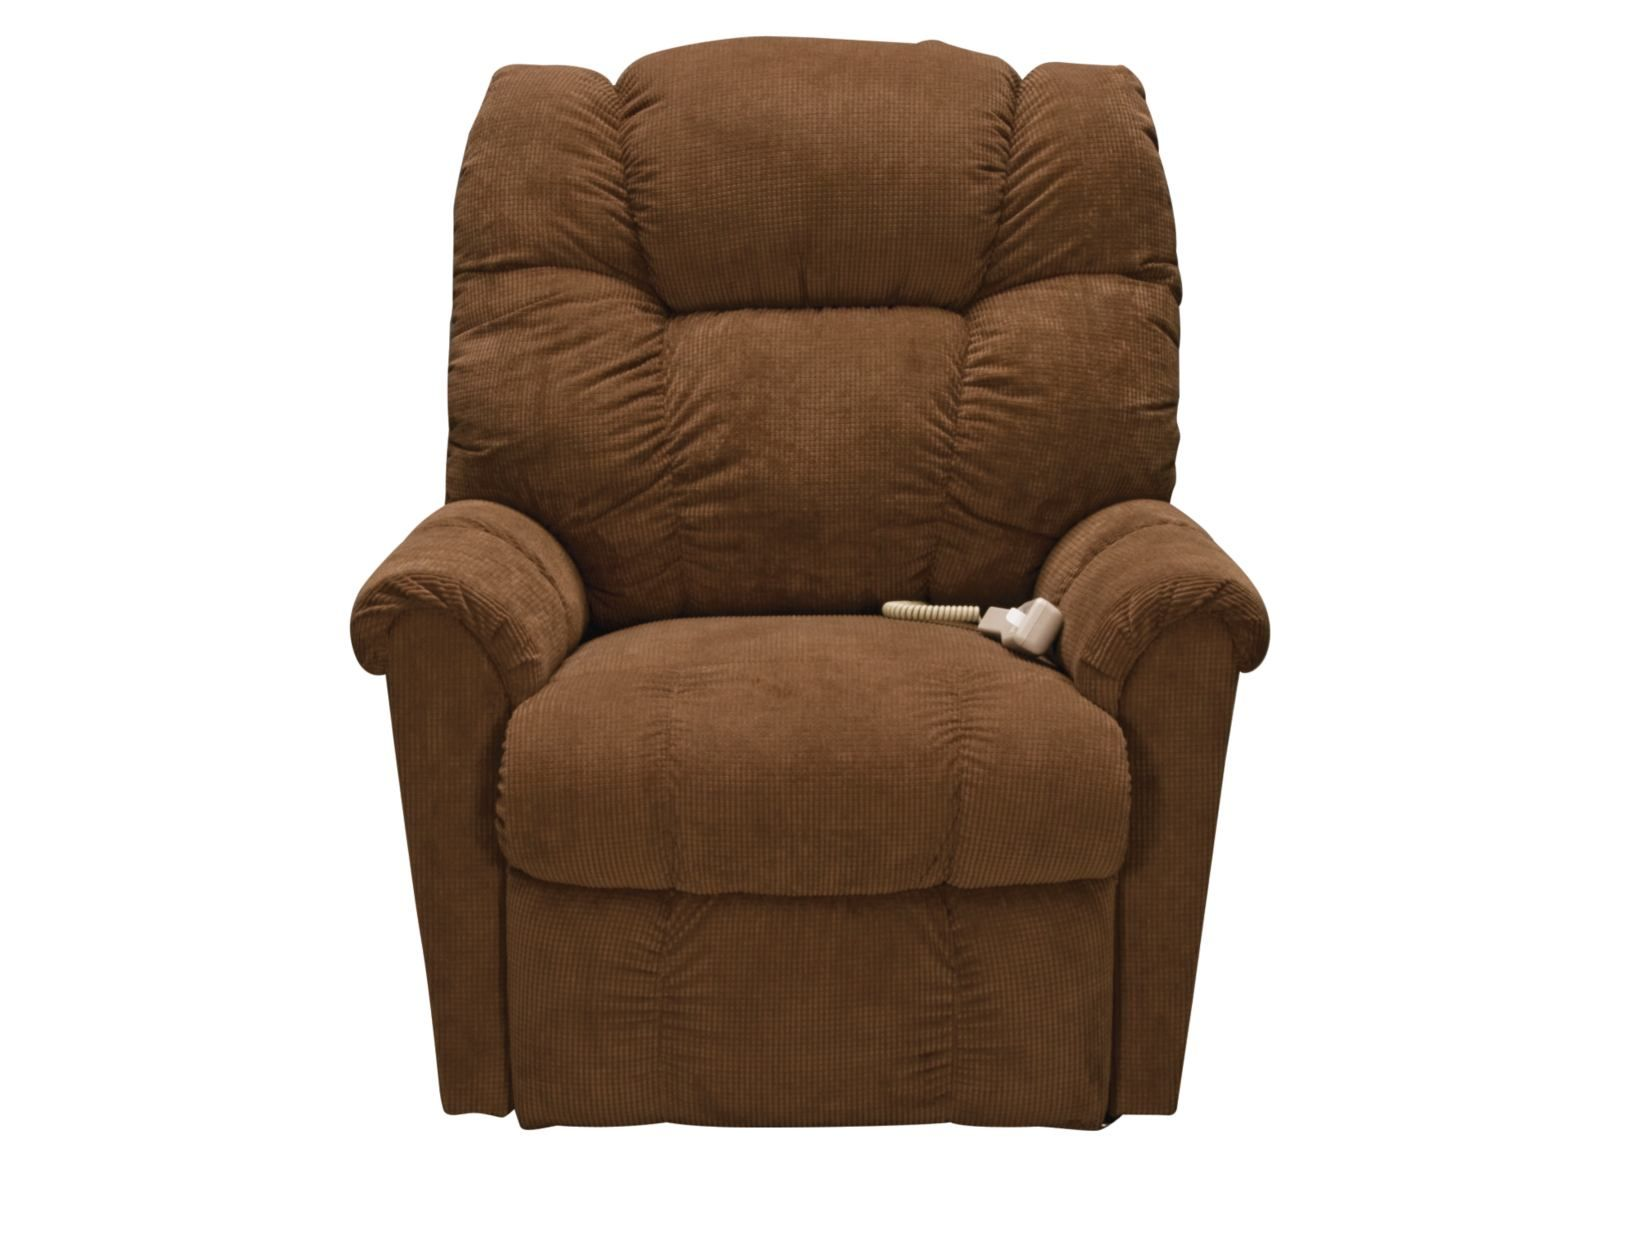 Sherman Mocha Power Lift Chair Value City Furniture